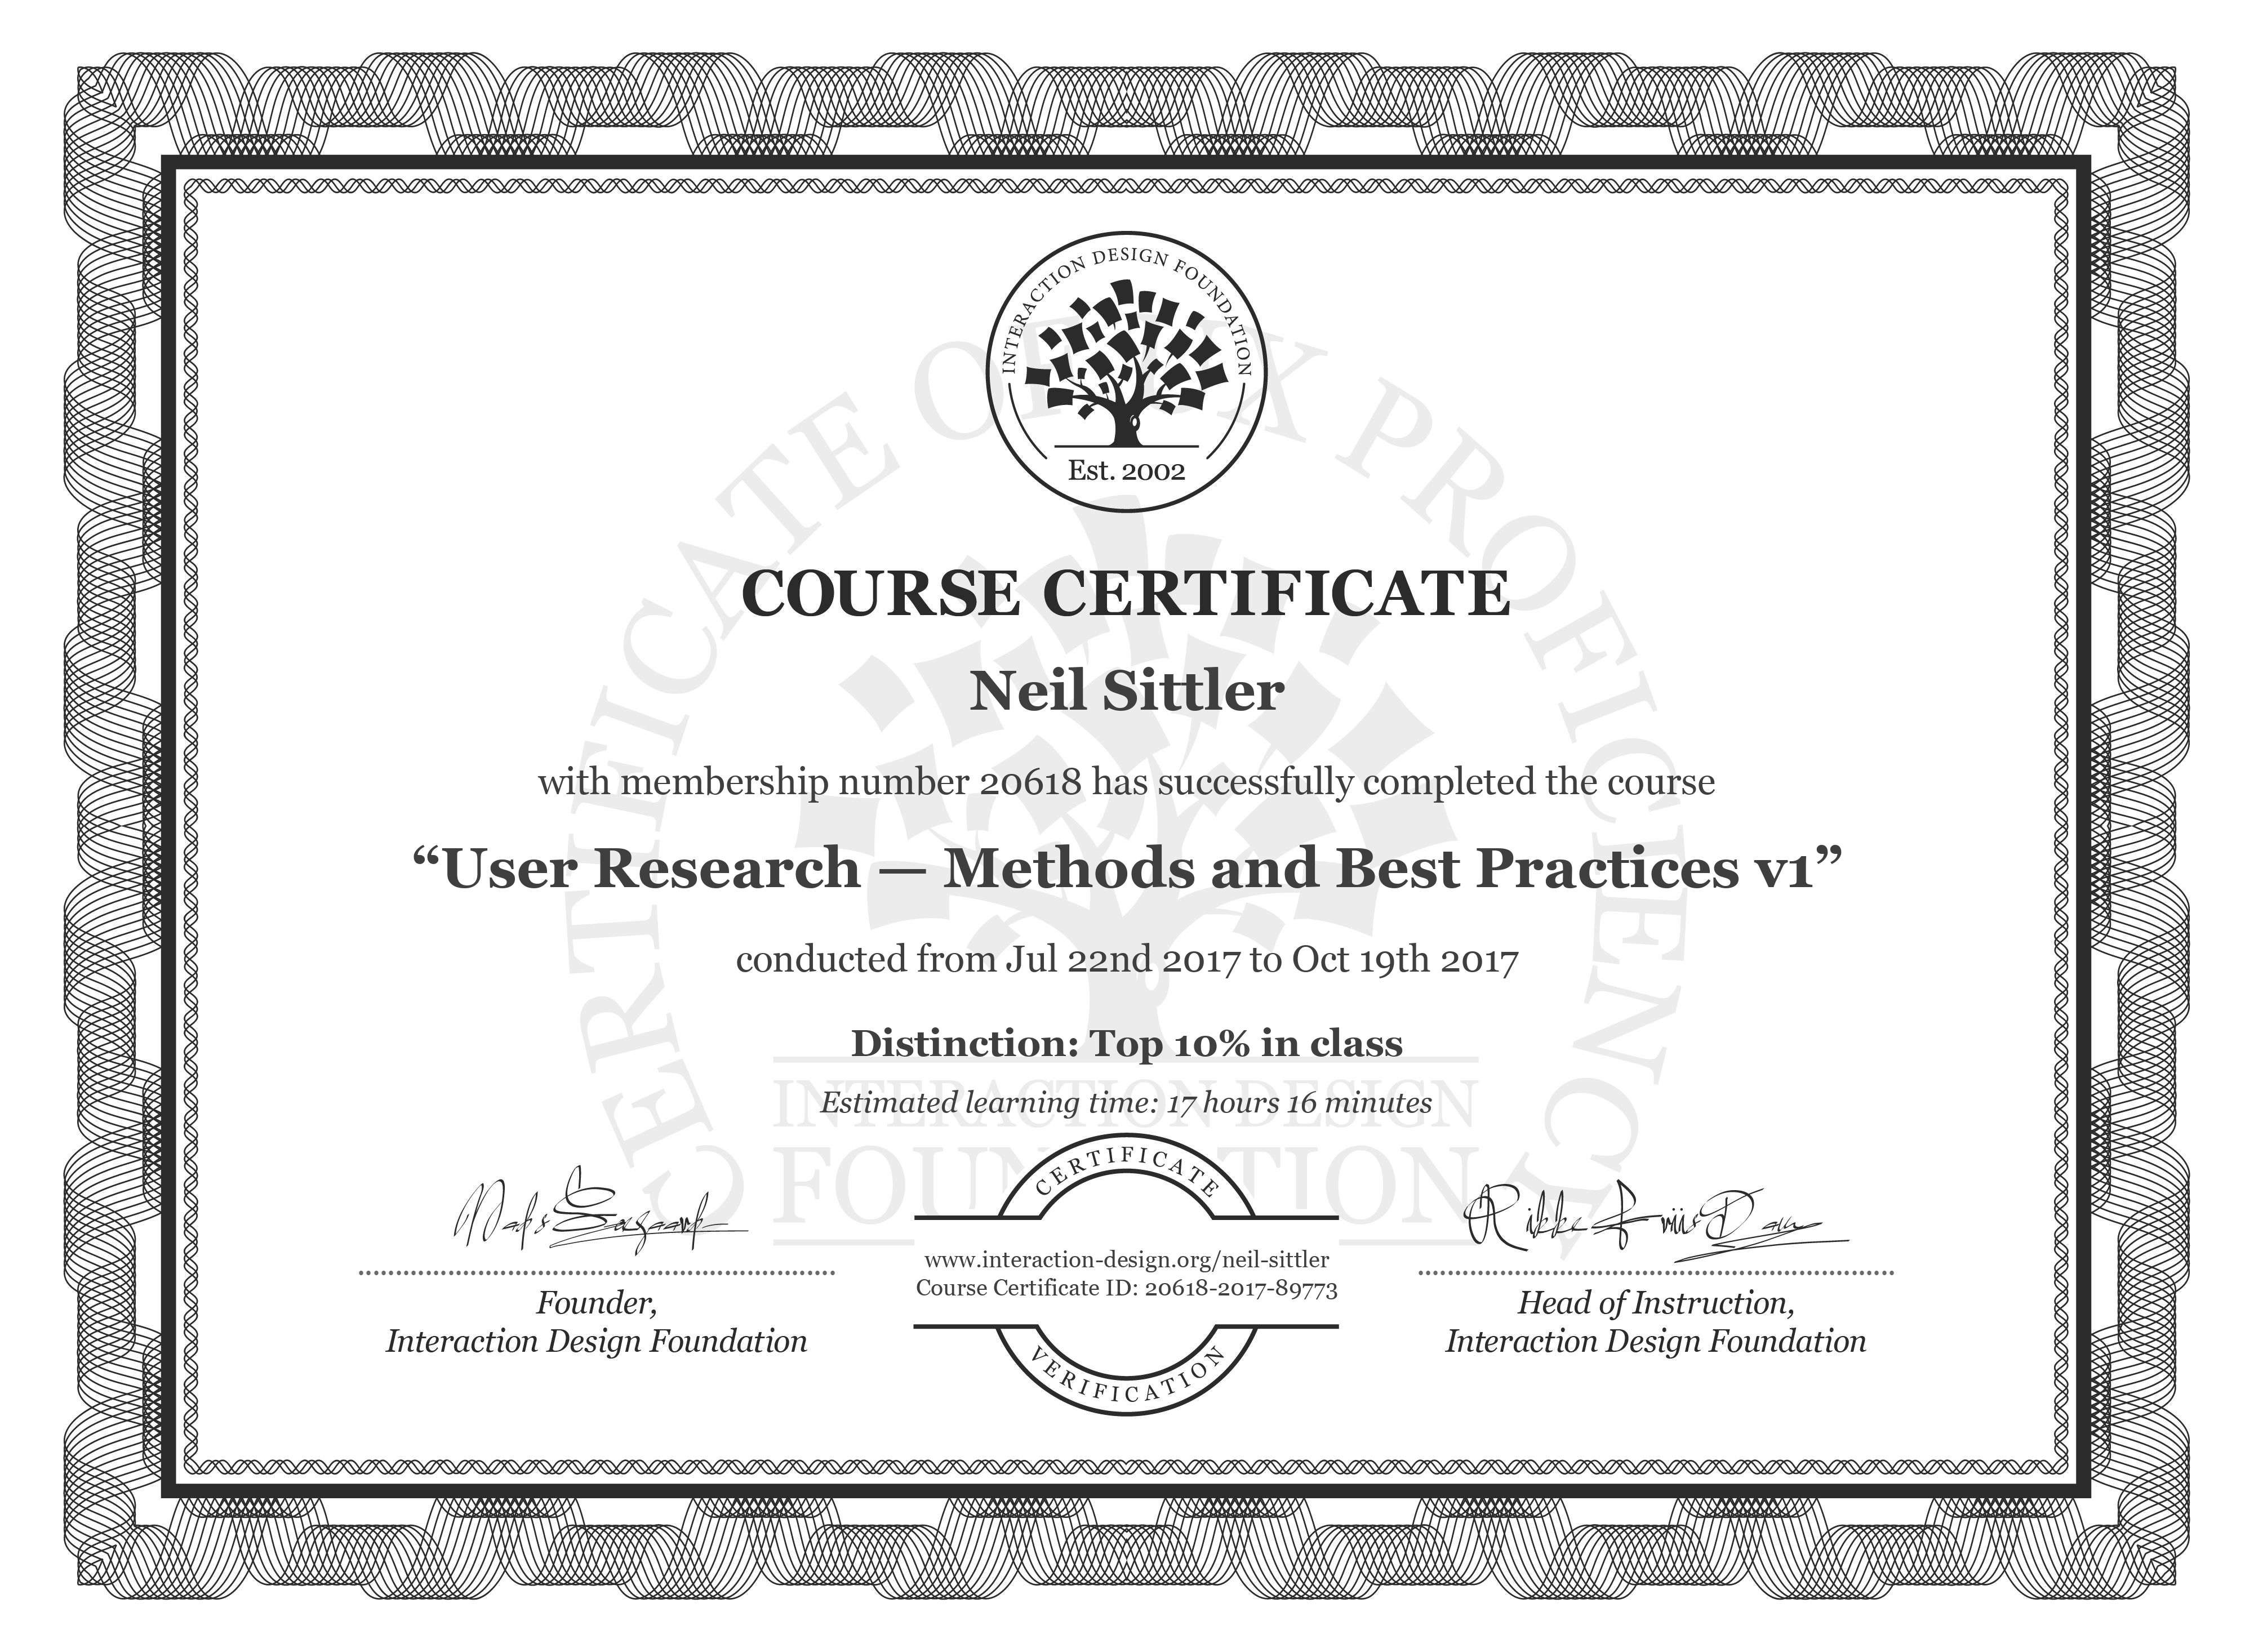 Neil Sittler: Course Certificate - User Research — Methods and Best Practices